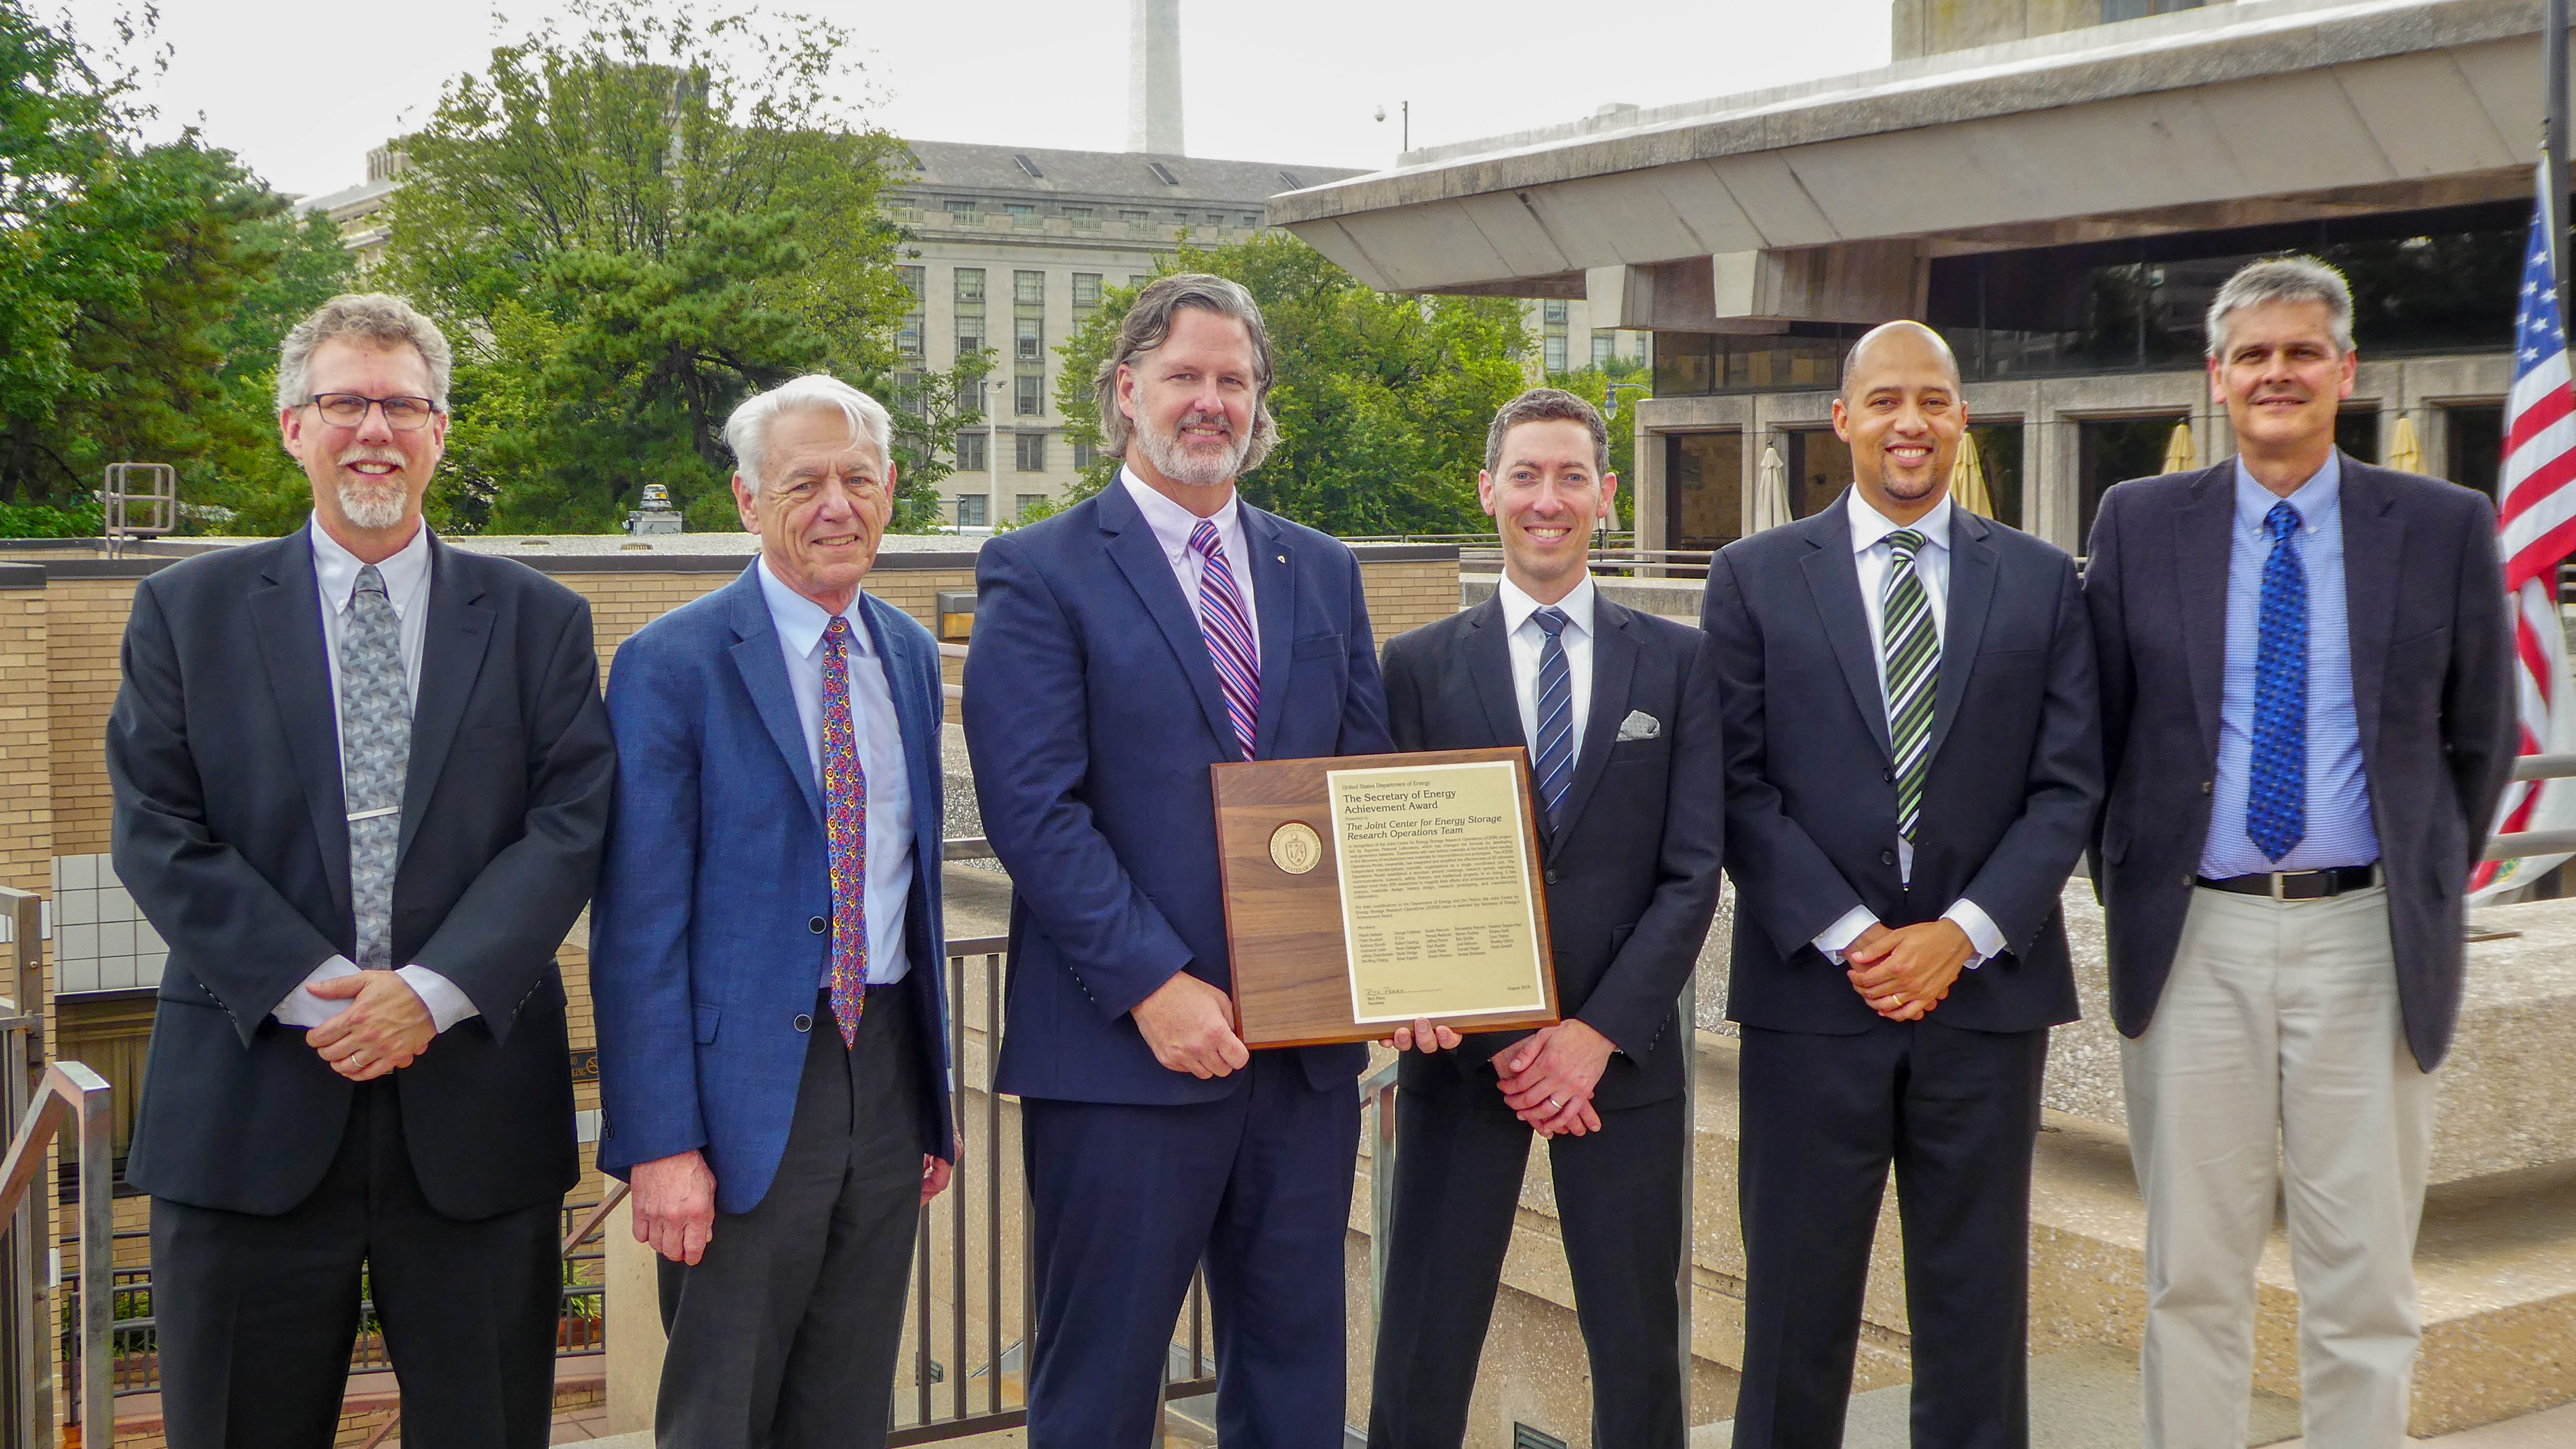 Karl Mueller, George Crabtree, Devin Hodge, Brian Ingram, Fikile Brushett and Kevin Zavadil accepted the Secretary of Energy's Achievement Award on behalf of the 29 individuals who received the award.